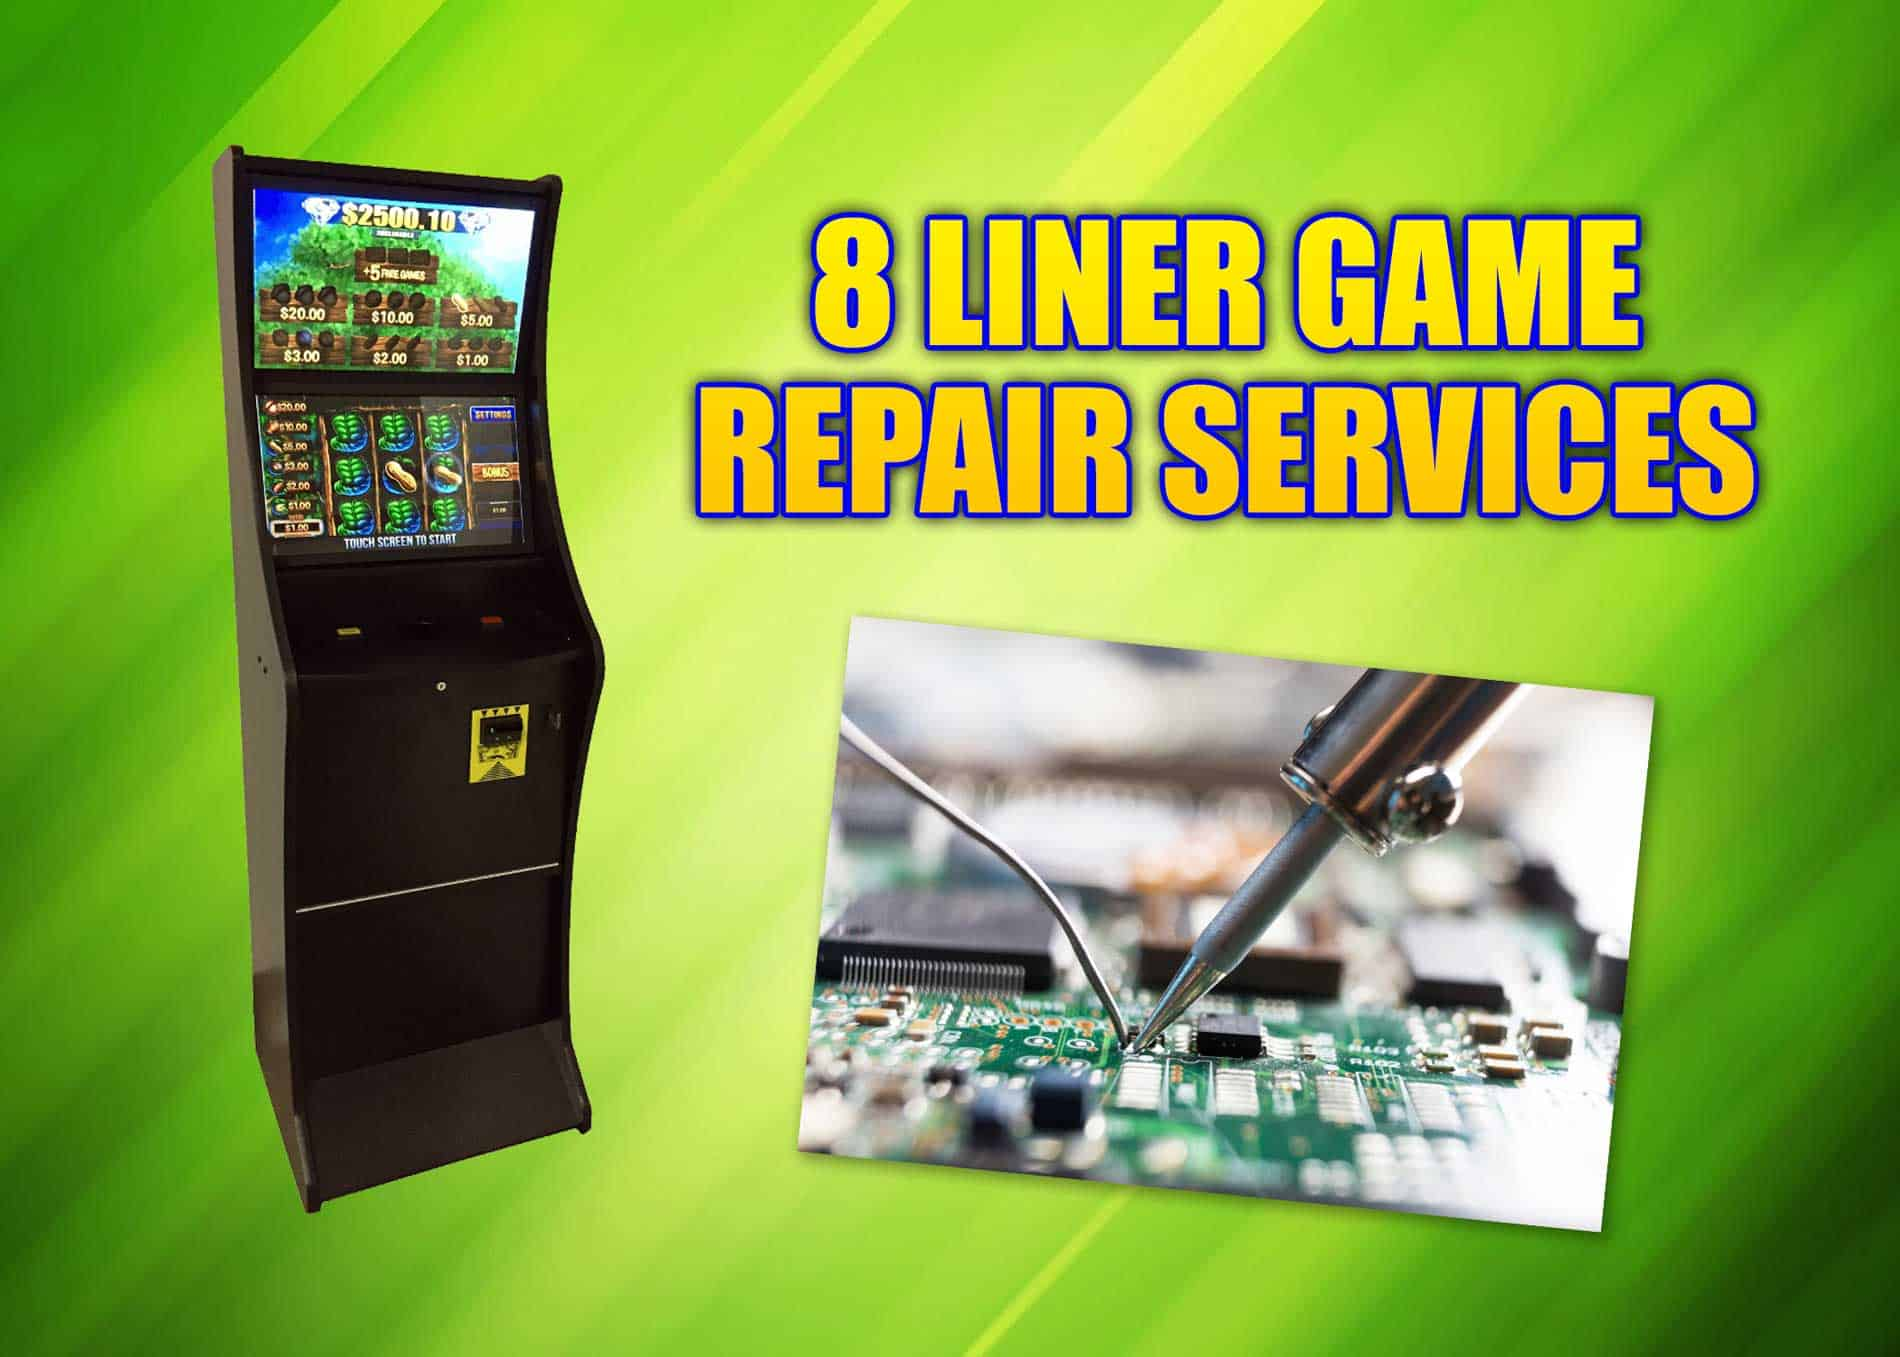 You are currently viewing Count on 8 Line Supply for 8 liner game repair services